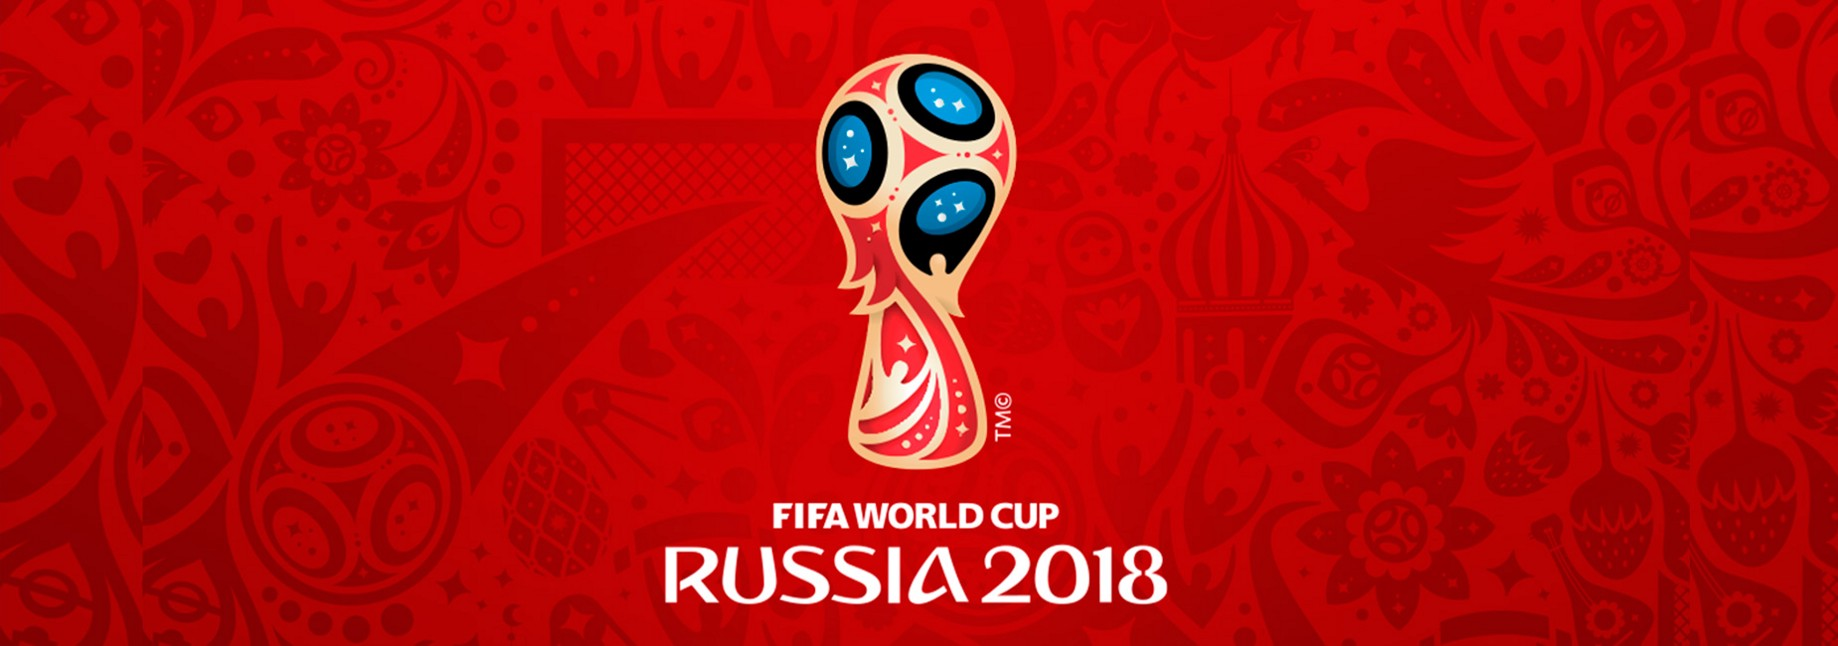 Finding the favorite team in 2018 FIFA World Cup through scraping Tweets